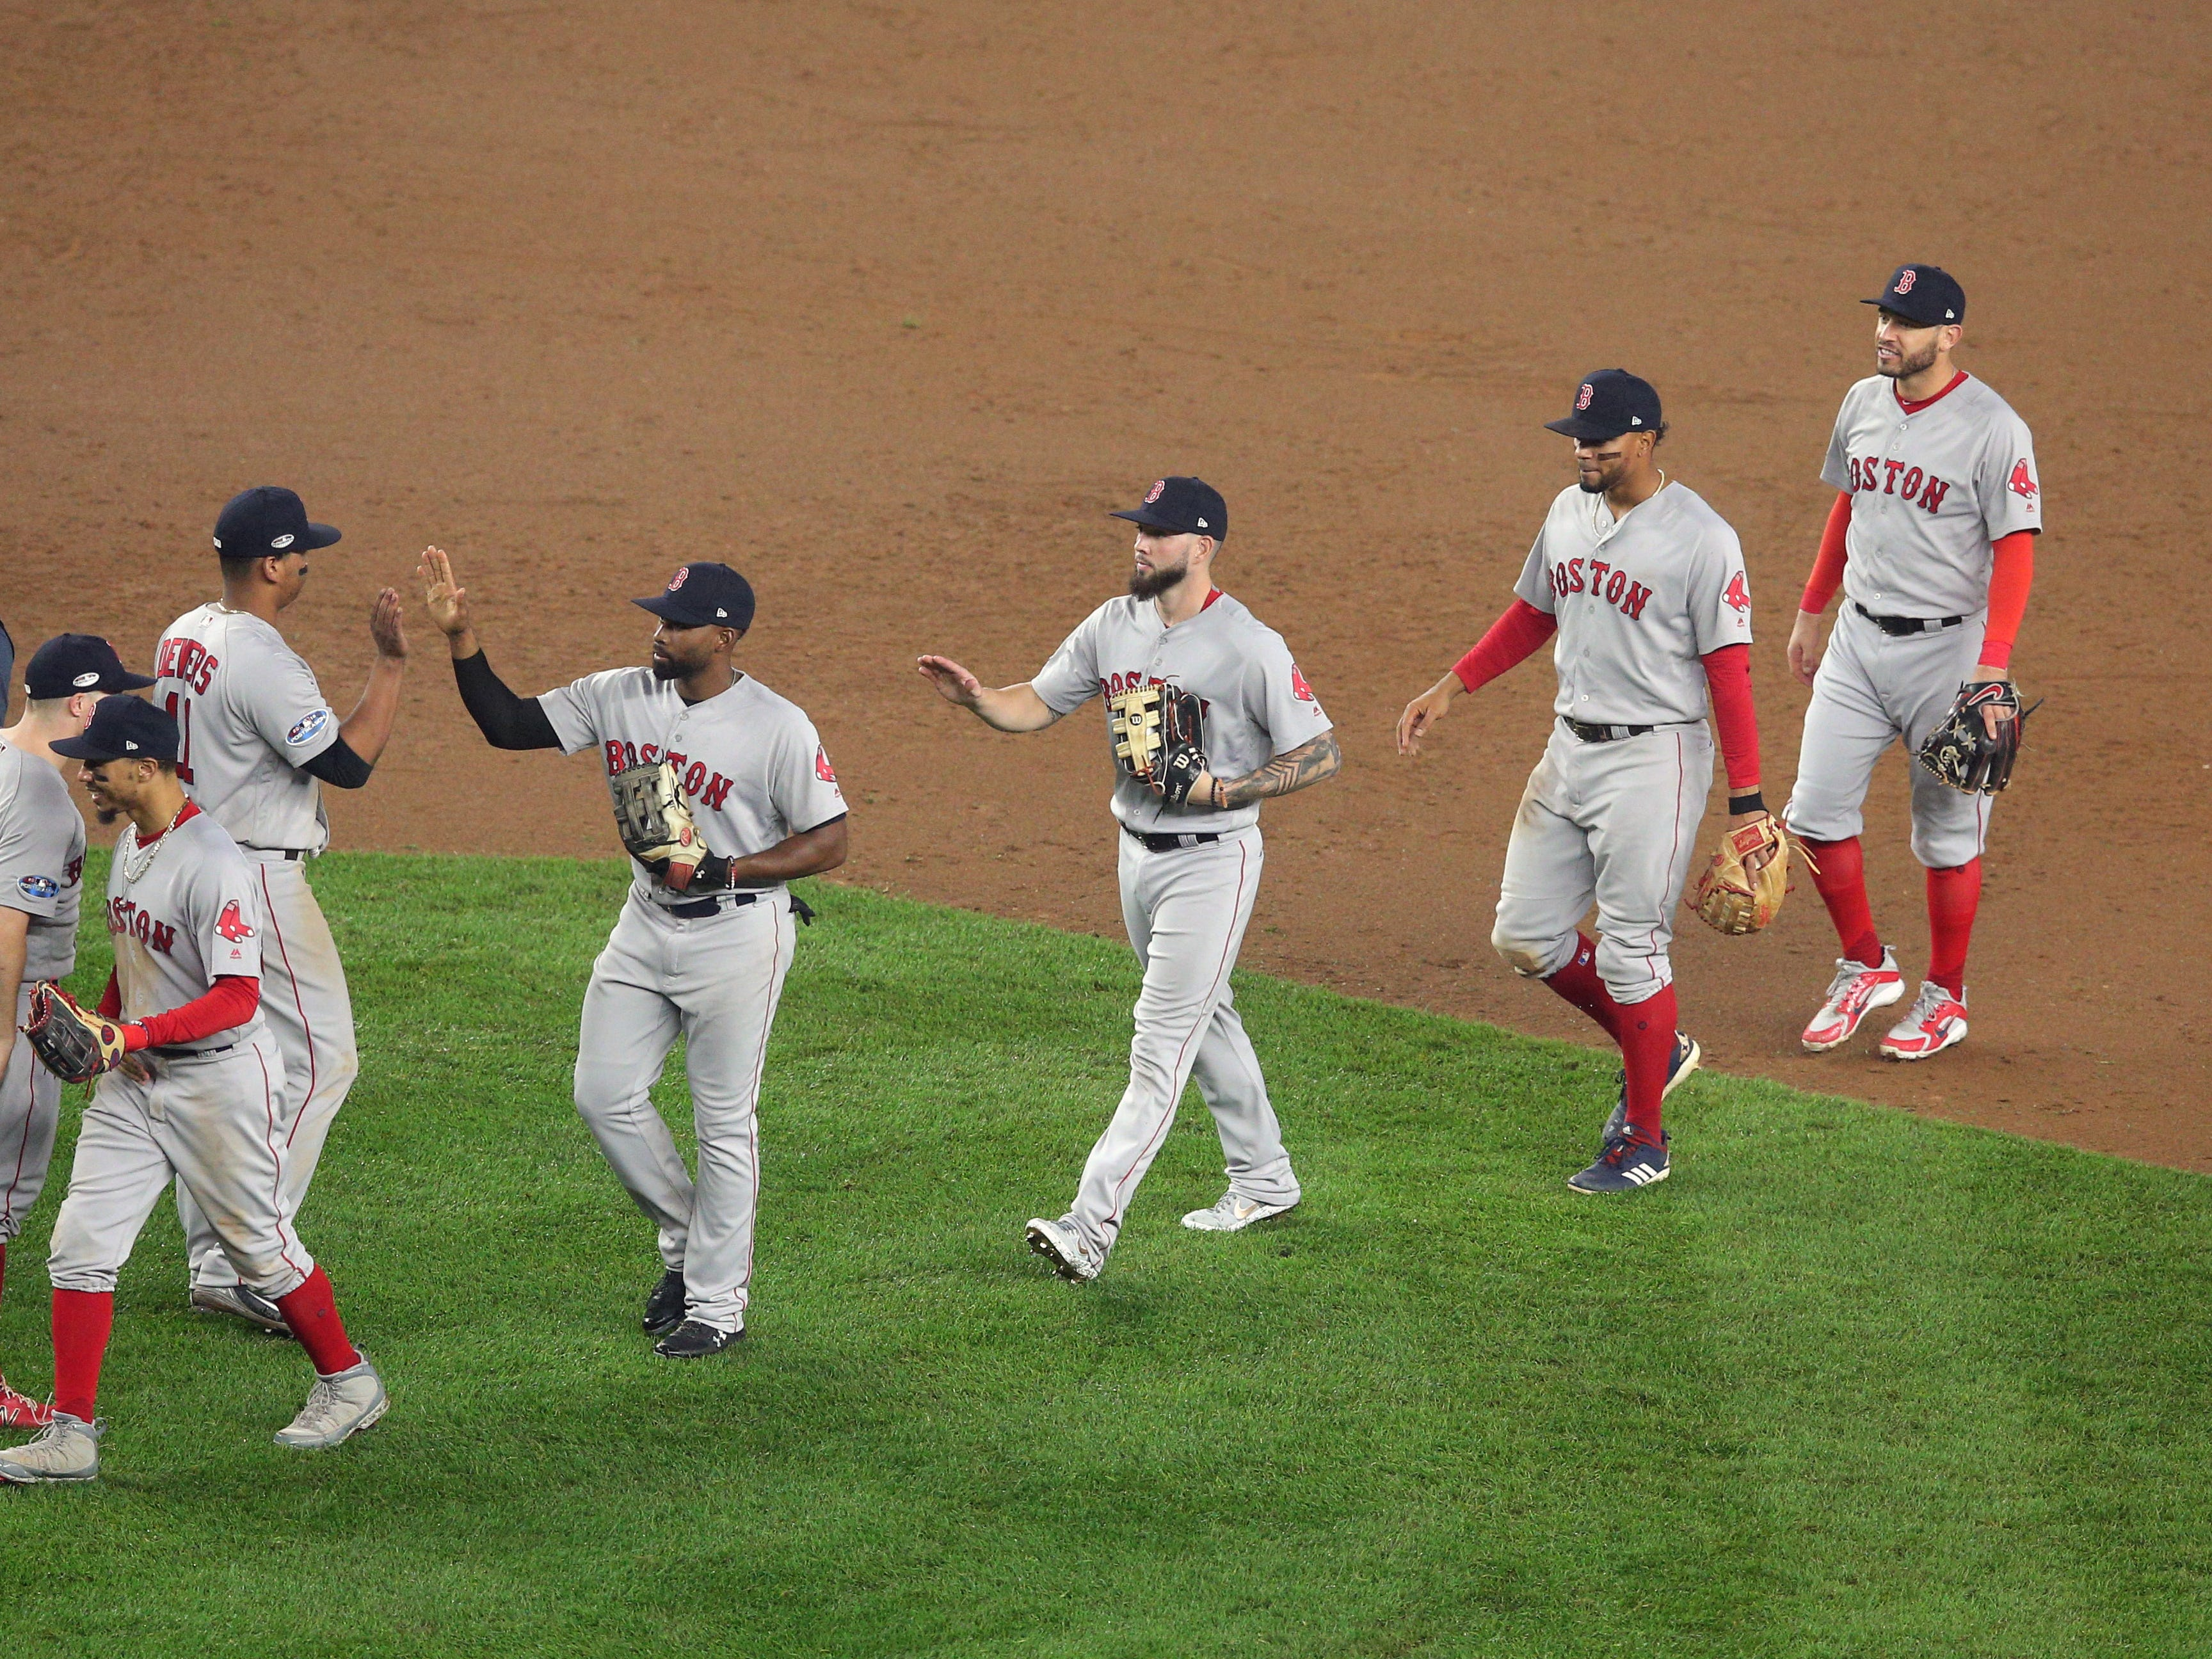 ALDS Game 3: The Red Sox celebrate after defeating the Yankees 16-1.